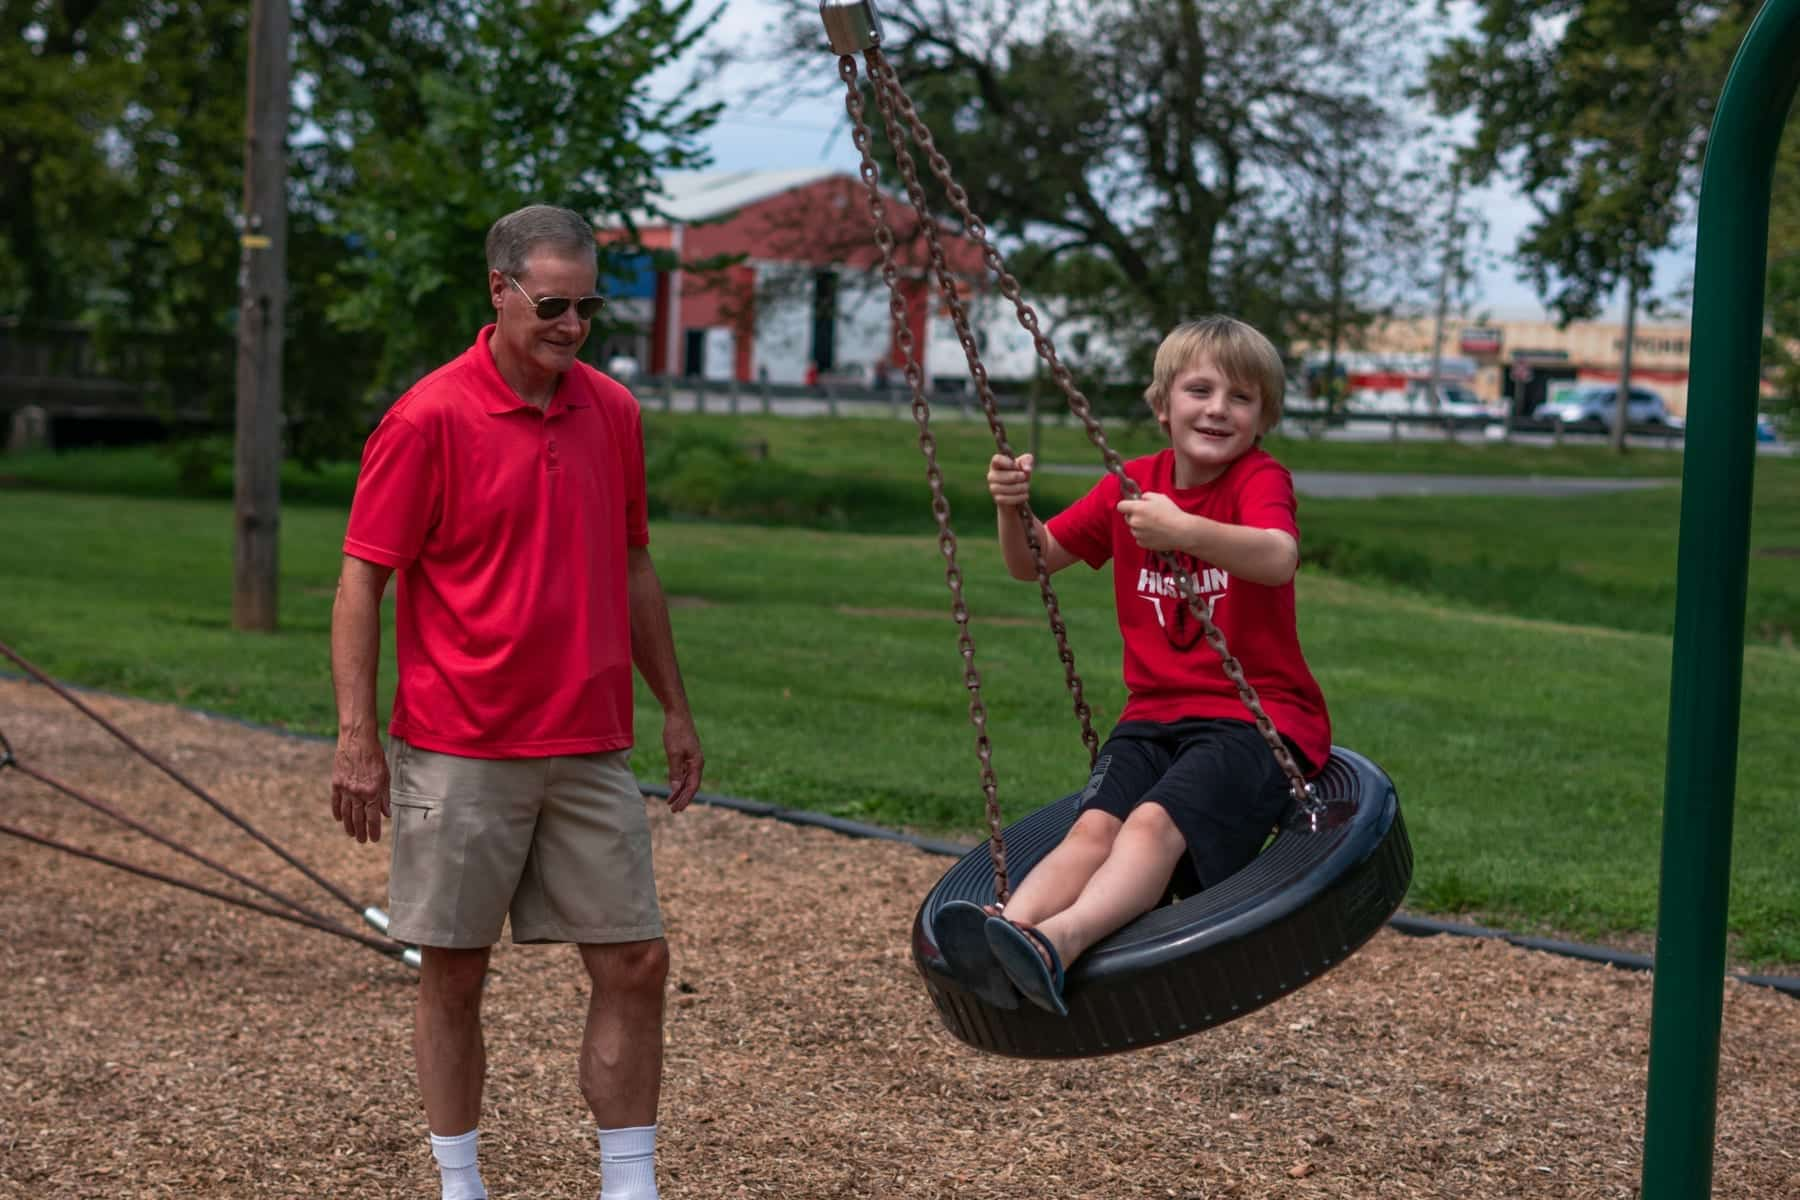 Jim and Kohen hung out recently at York's James E. (Jim) Gross Park, which was renamed from Lincoln Park in 2017 in honor of Jim's work in the community. (Photo by Caleb Robertson for Our York Media)